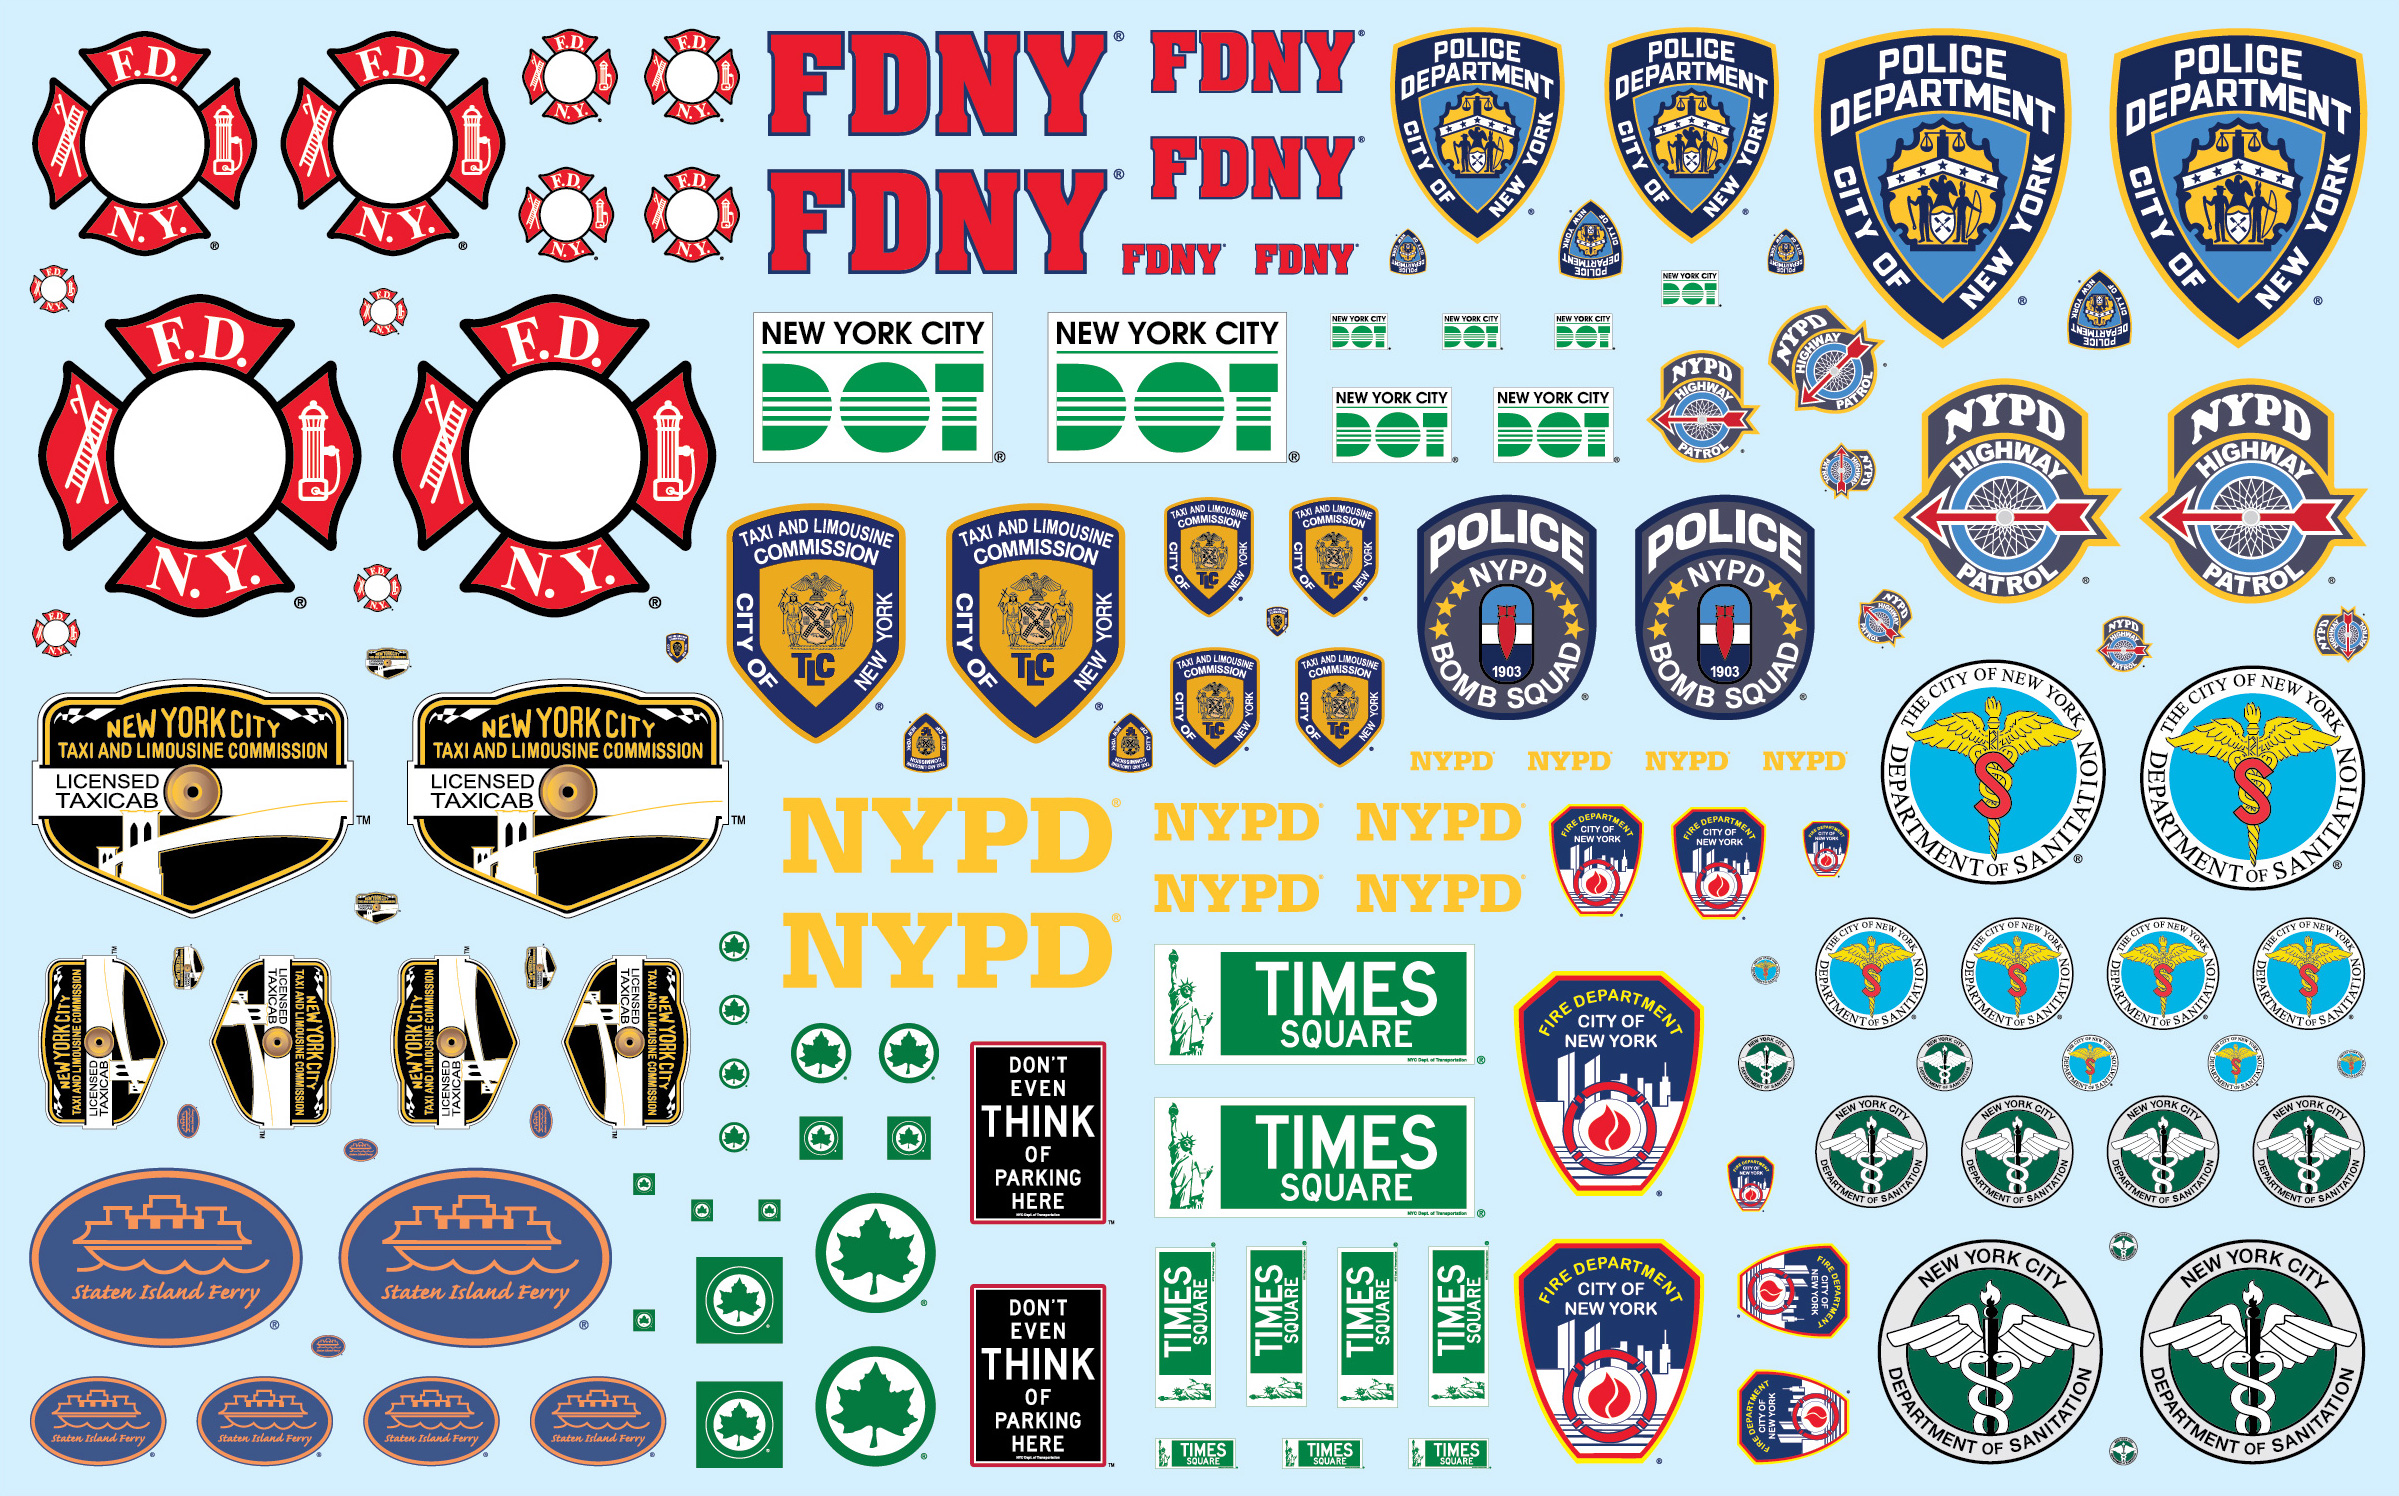 NYC Auxiliary Service Logos Decals for 1/25 Scale Models by AMT